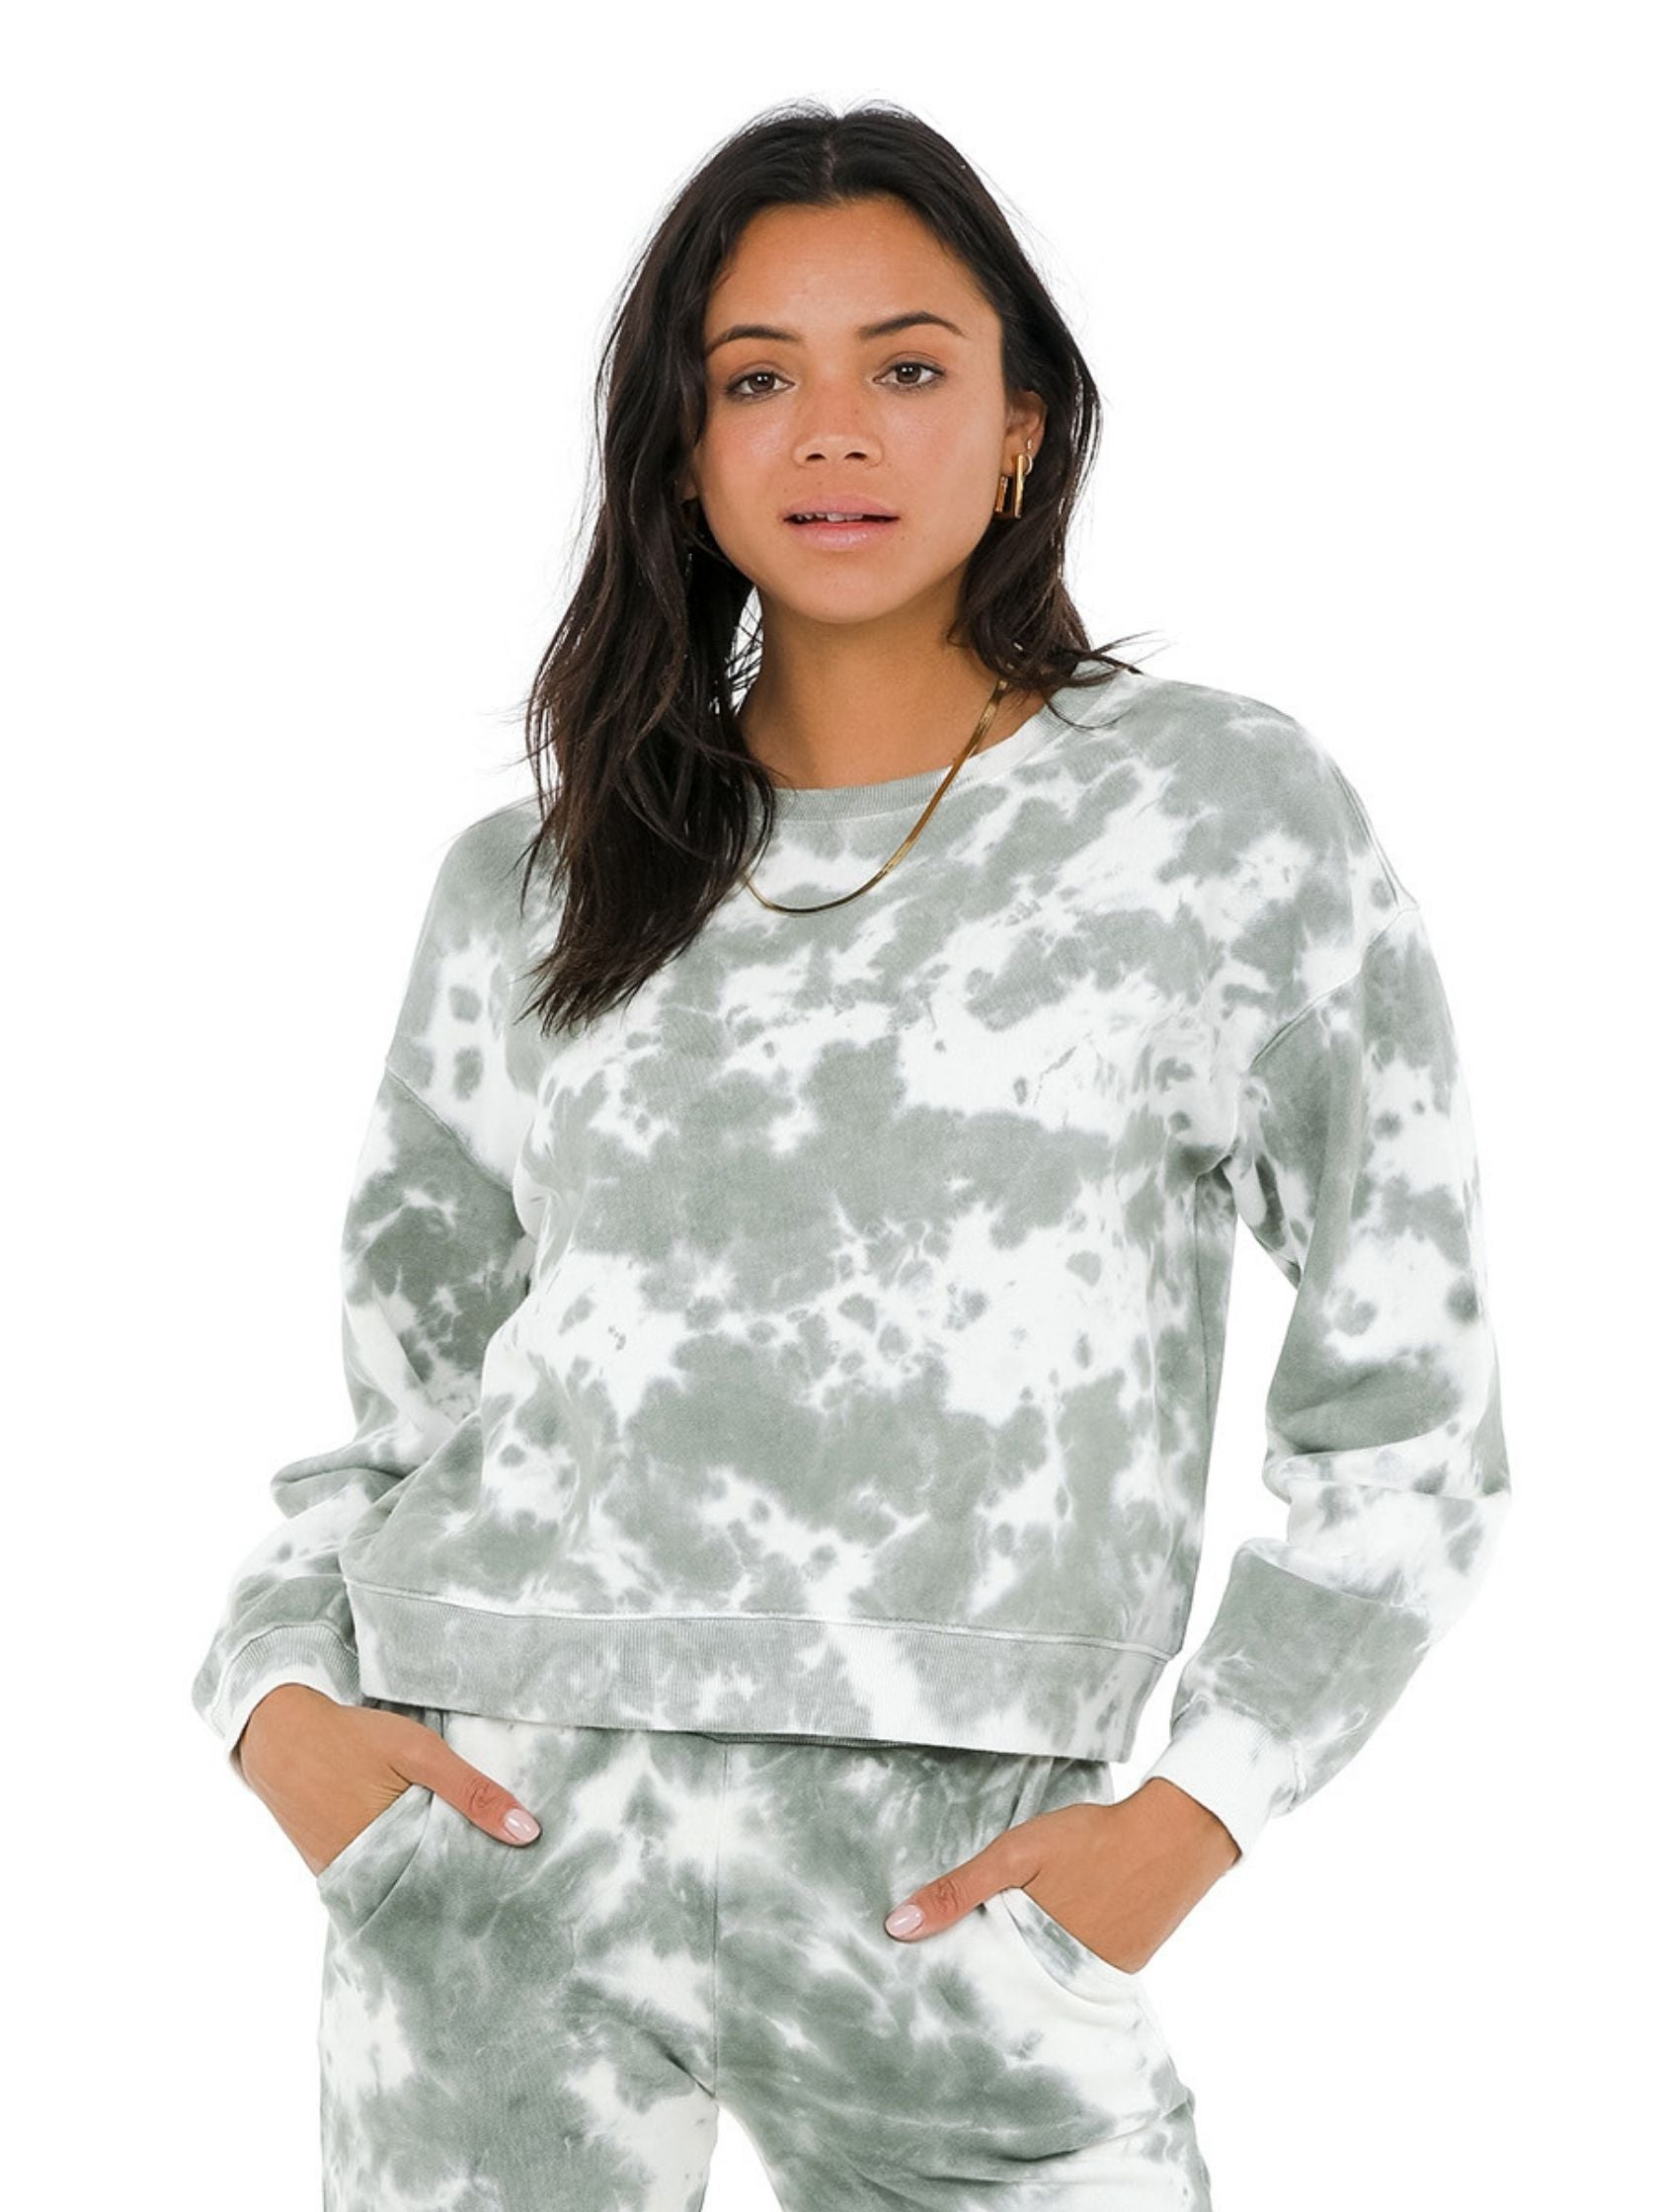 Woman wearing a sweatshirt rental from 525 called Tie Dye Basic Crew